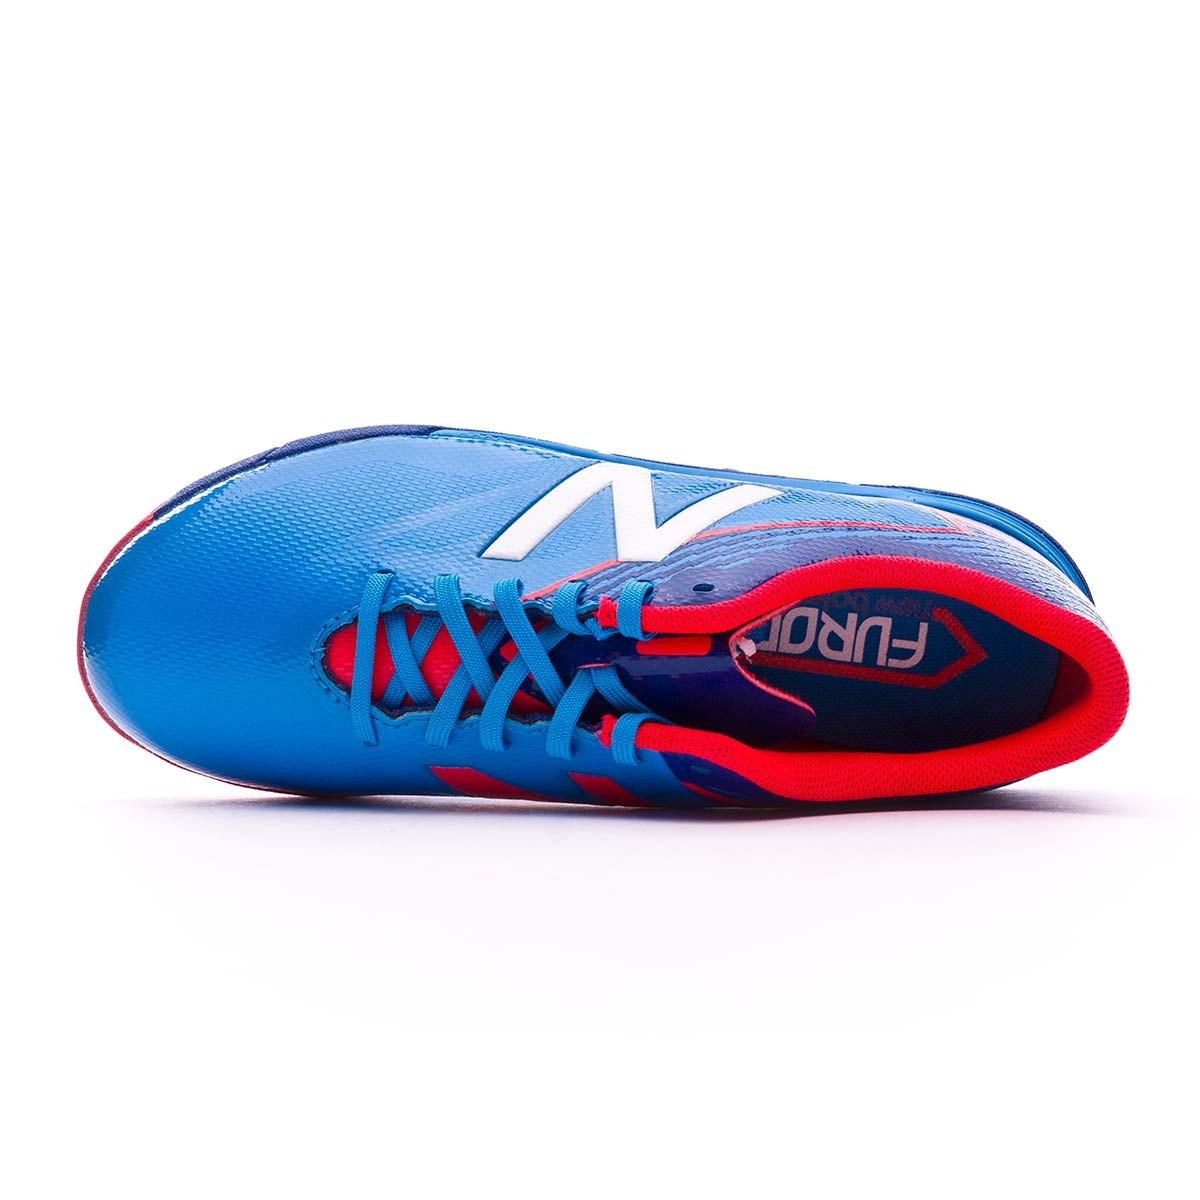 ... Zapatilla Furon 3.0 Dispatch Turf Niño Bolt-Team royal. CATEGORY. Football  boots · New Balance boots 2237e62efbfb9